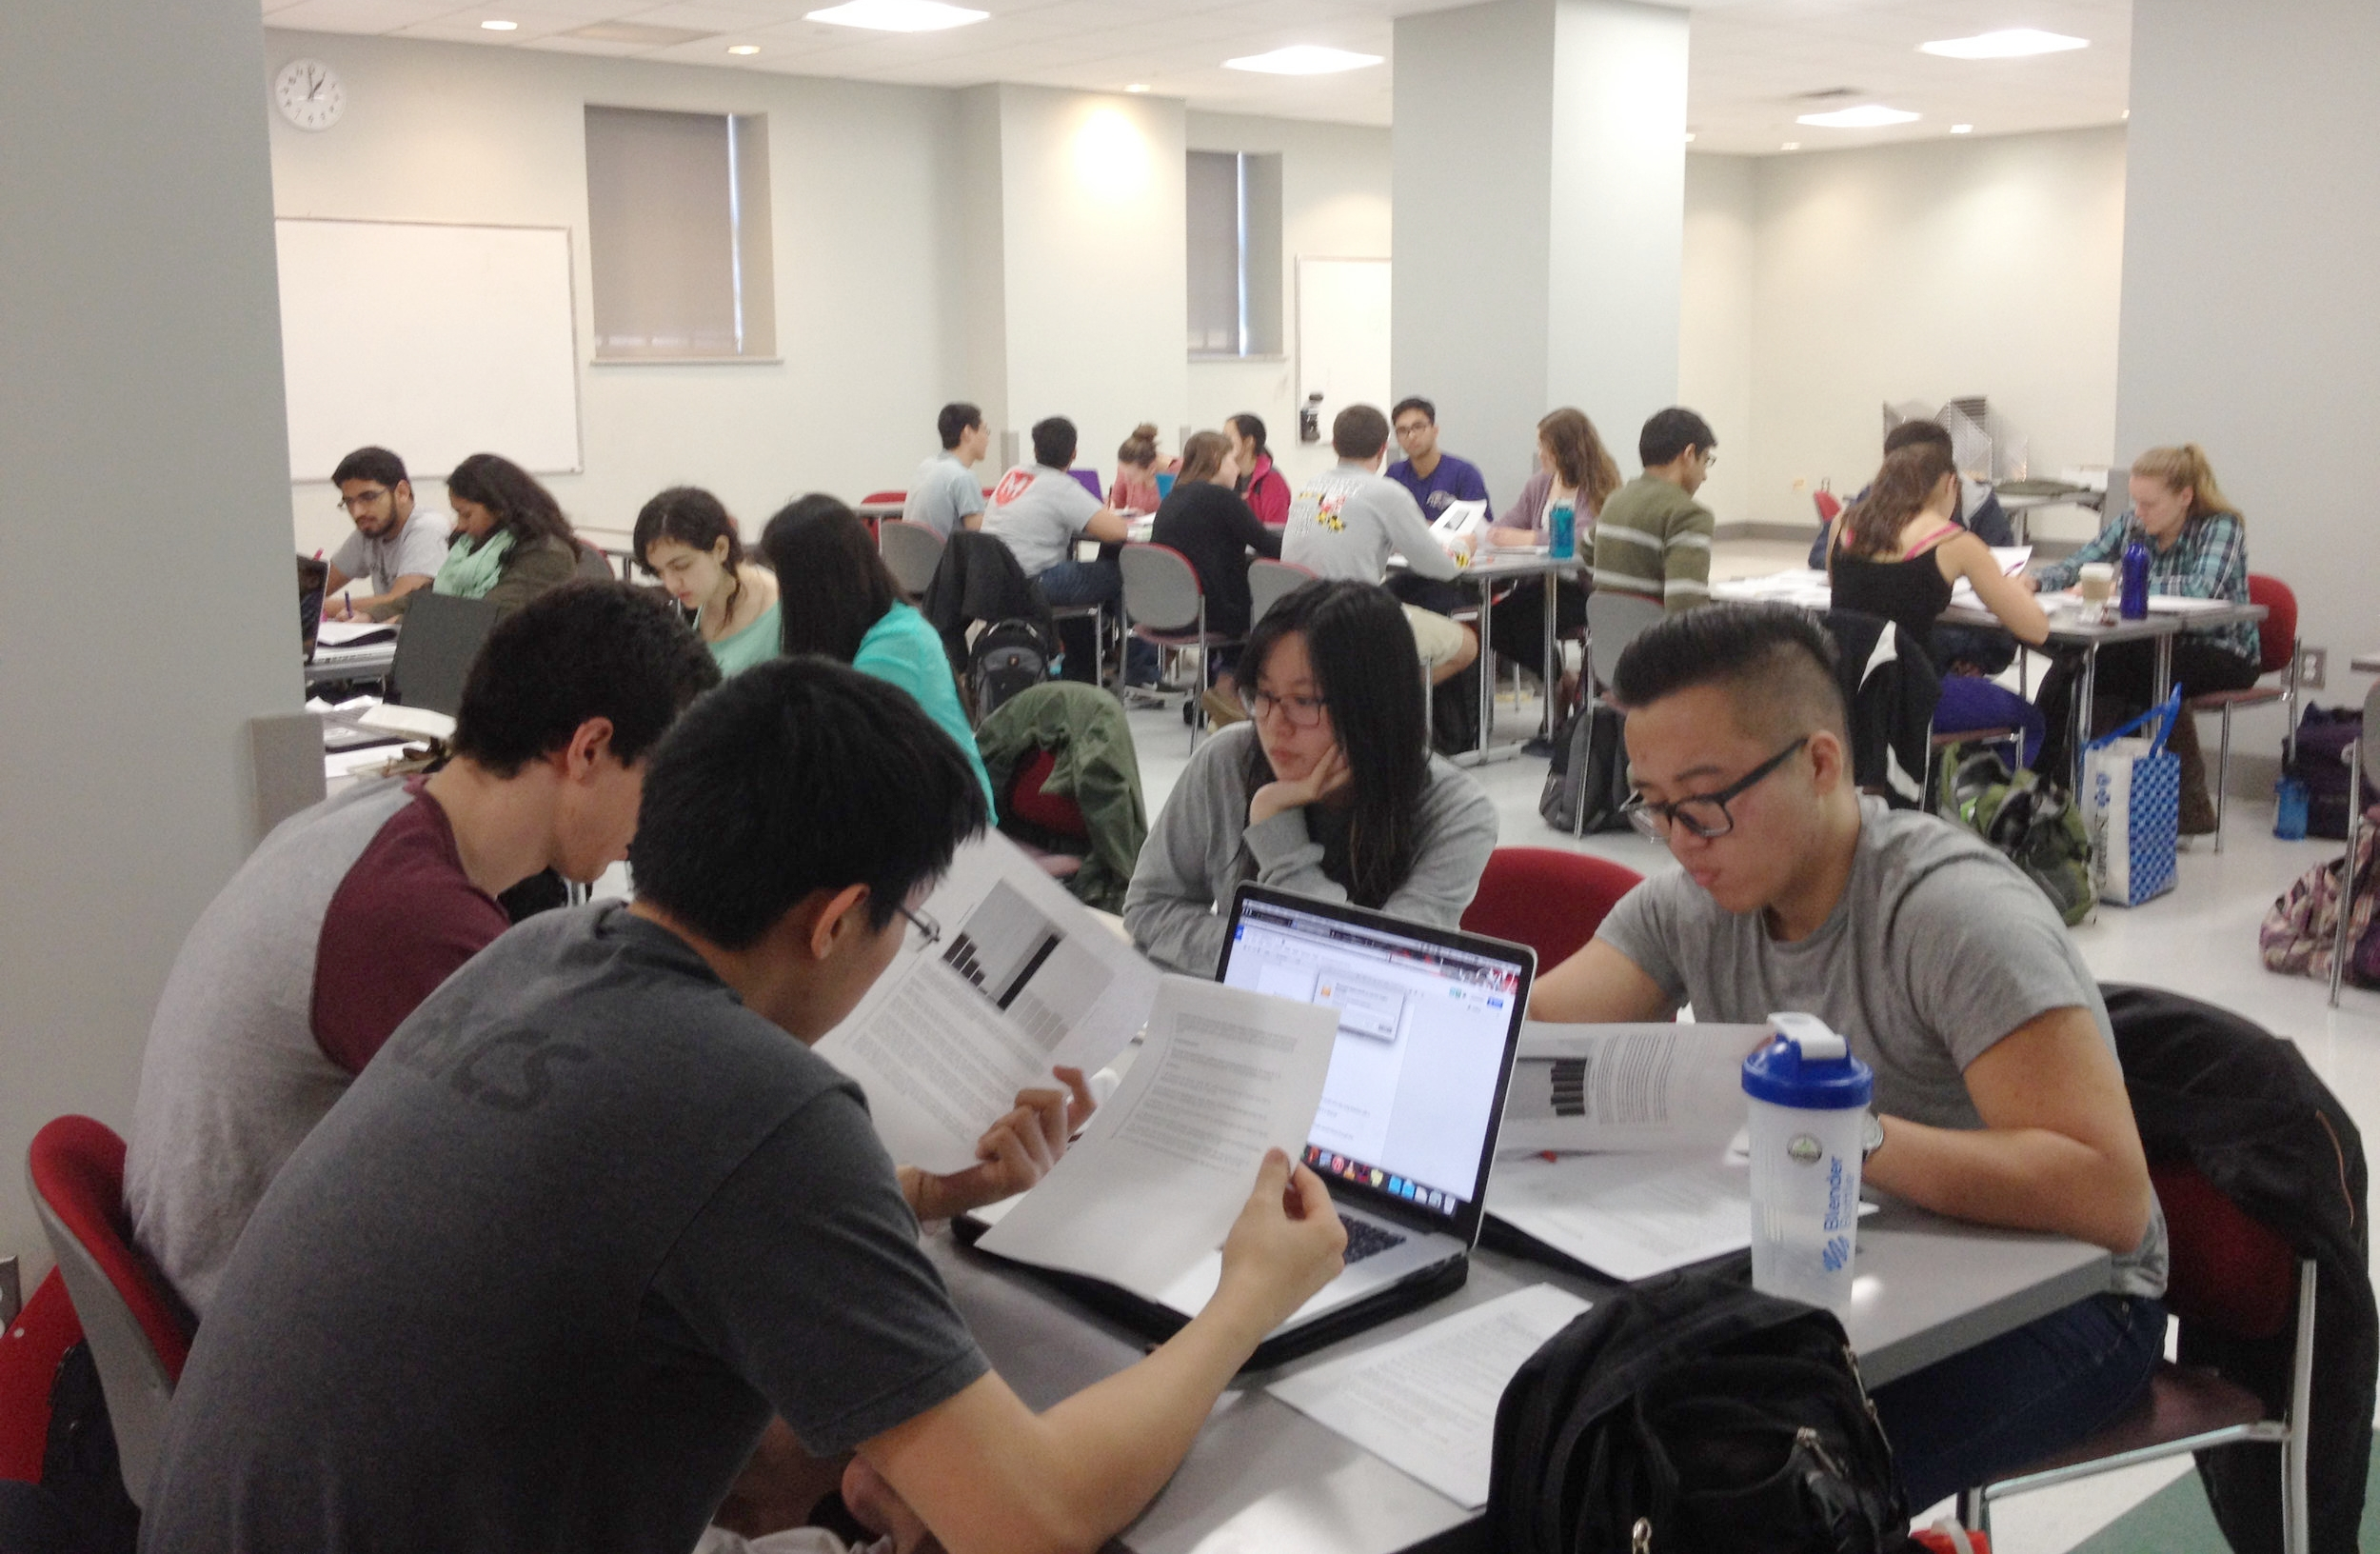 Students studying together.